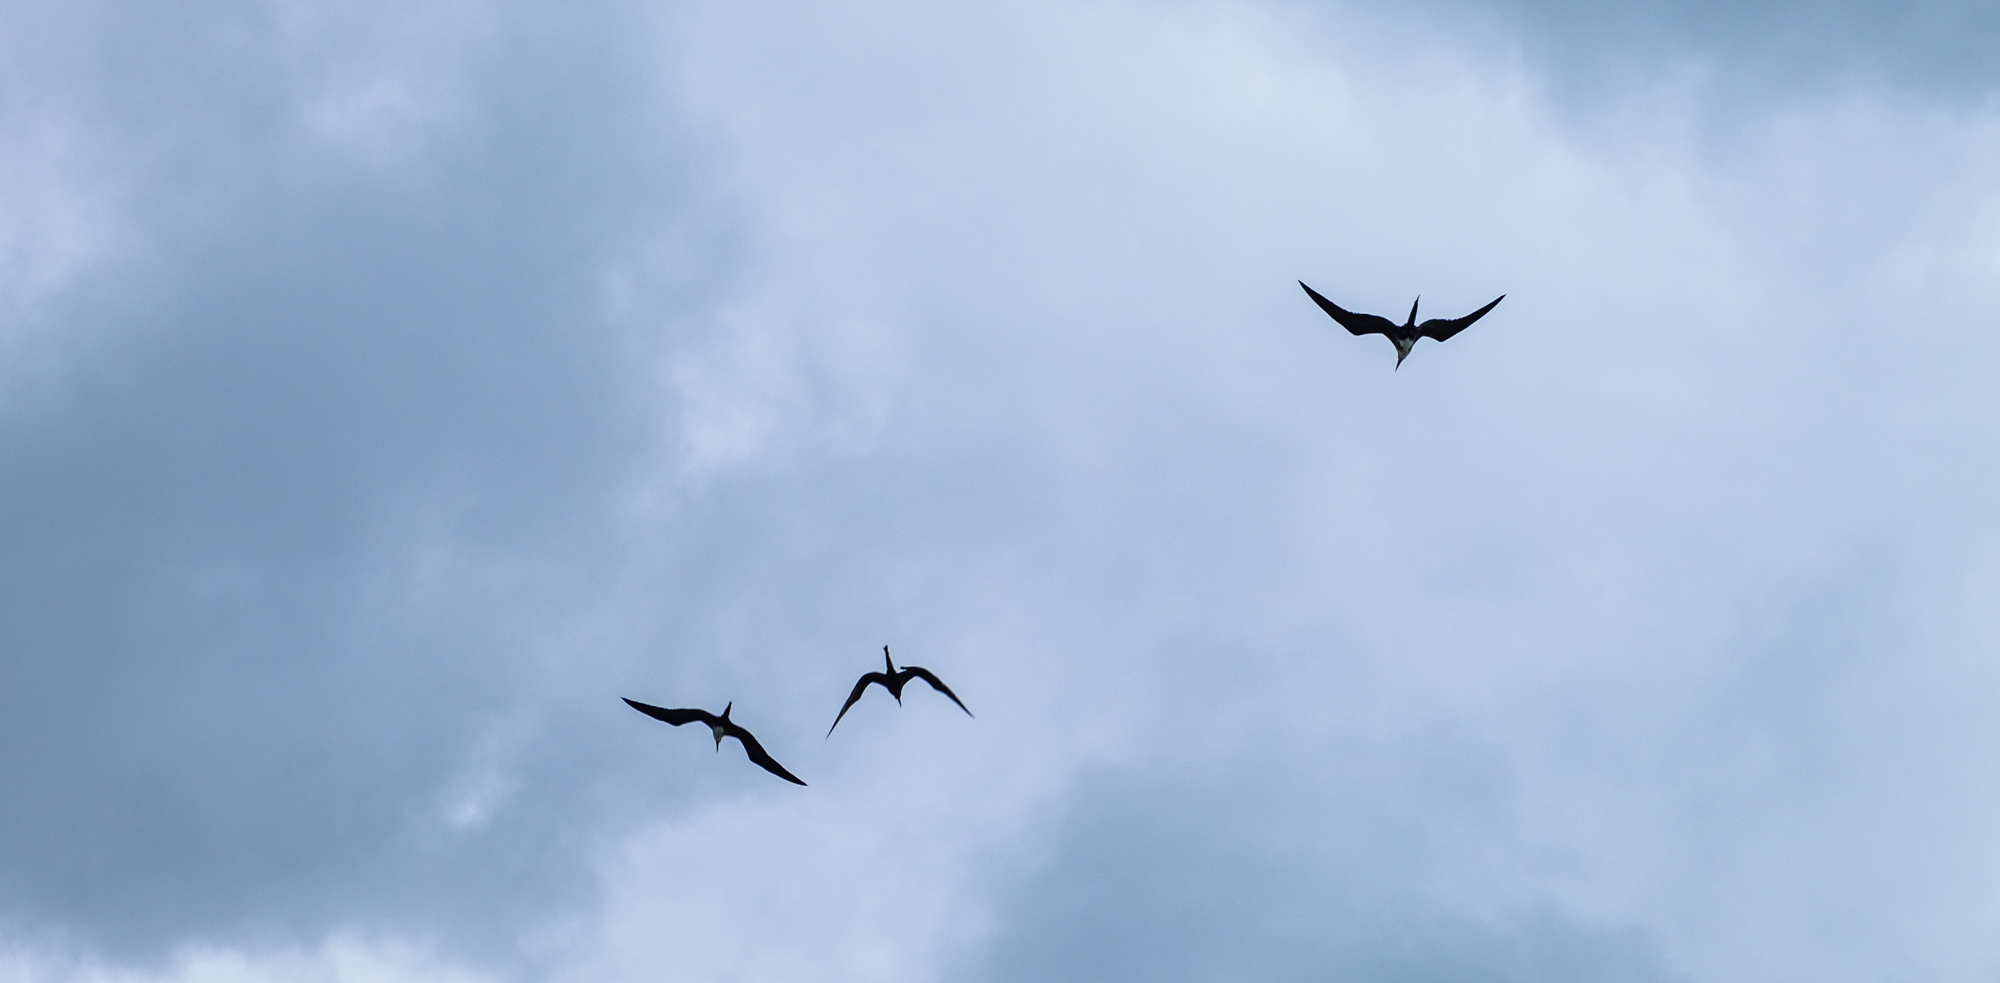 Aptly named Magnificent Frigatebirds soaring above.